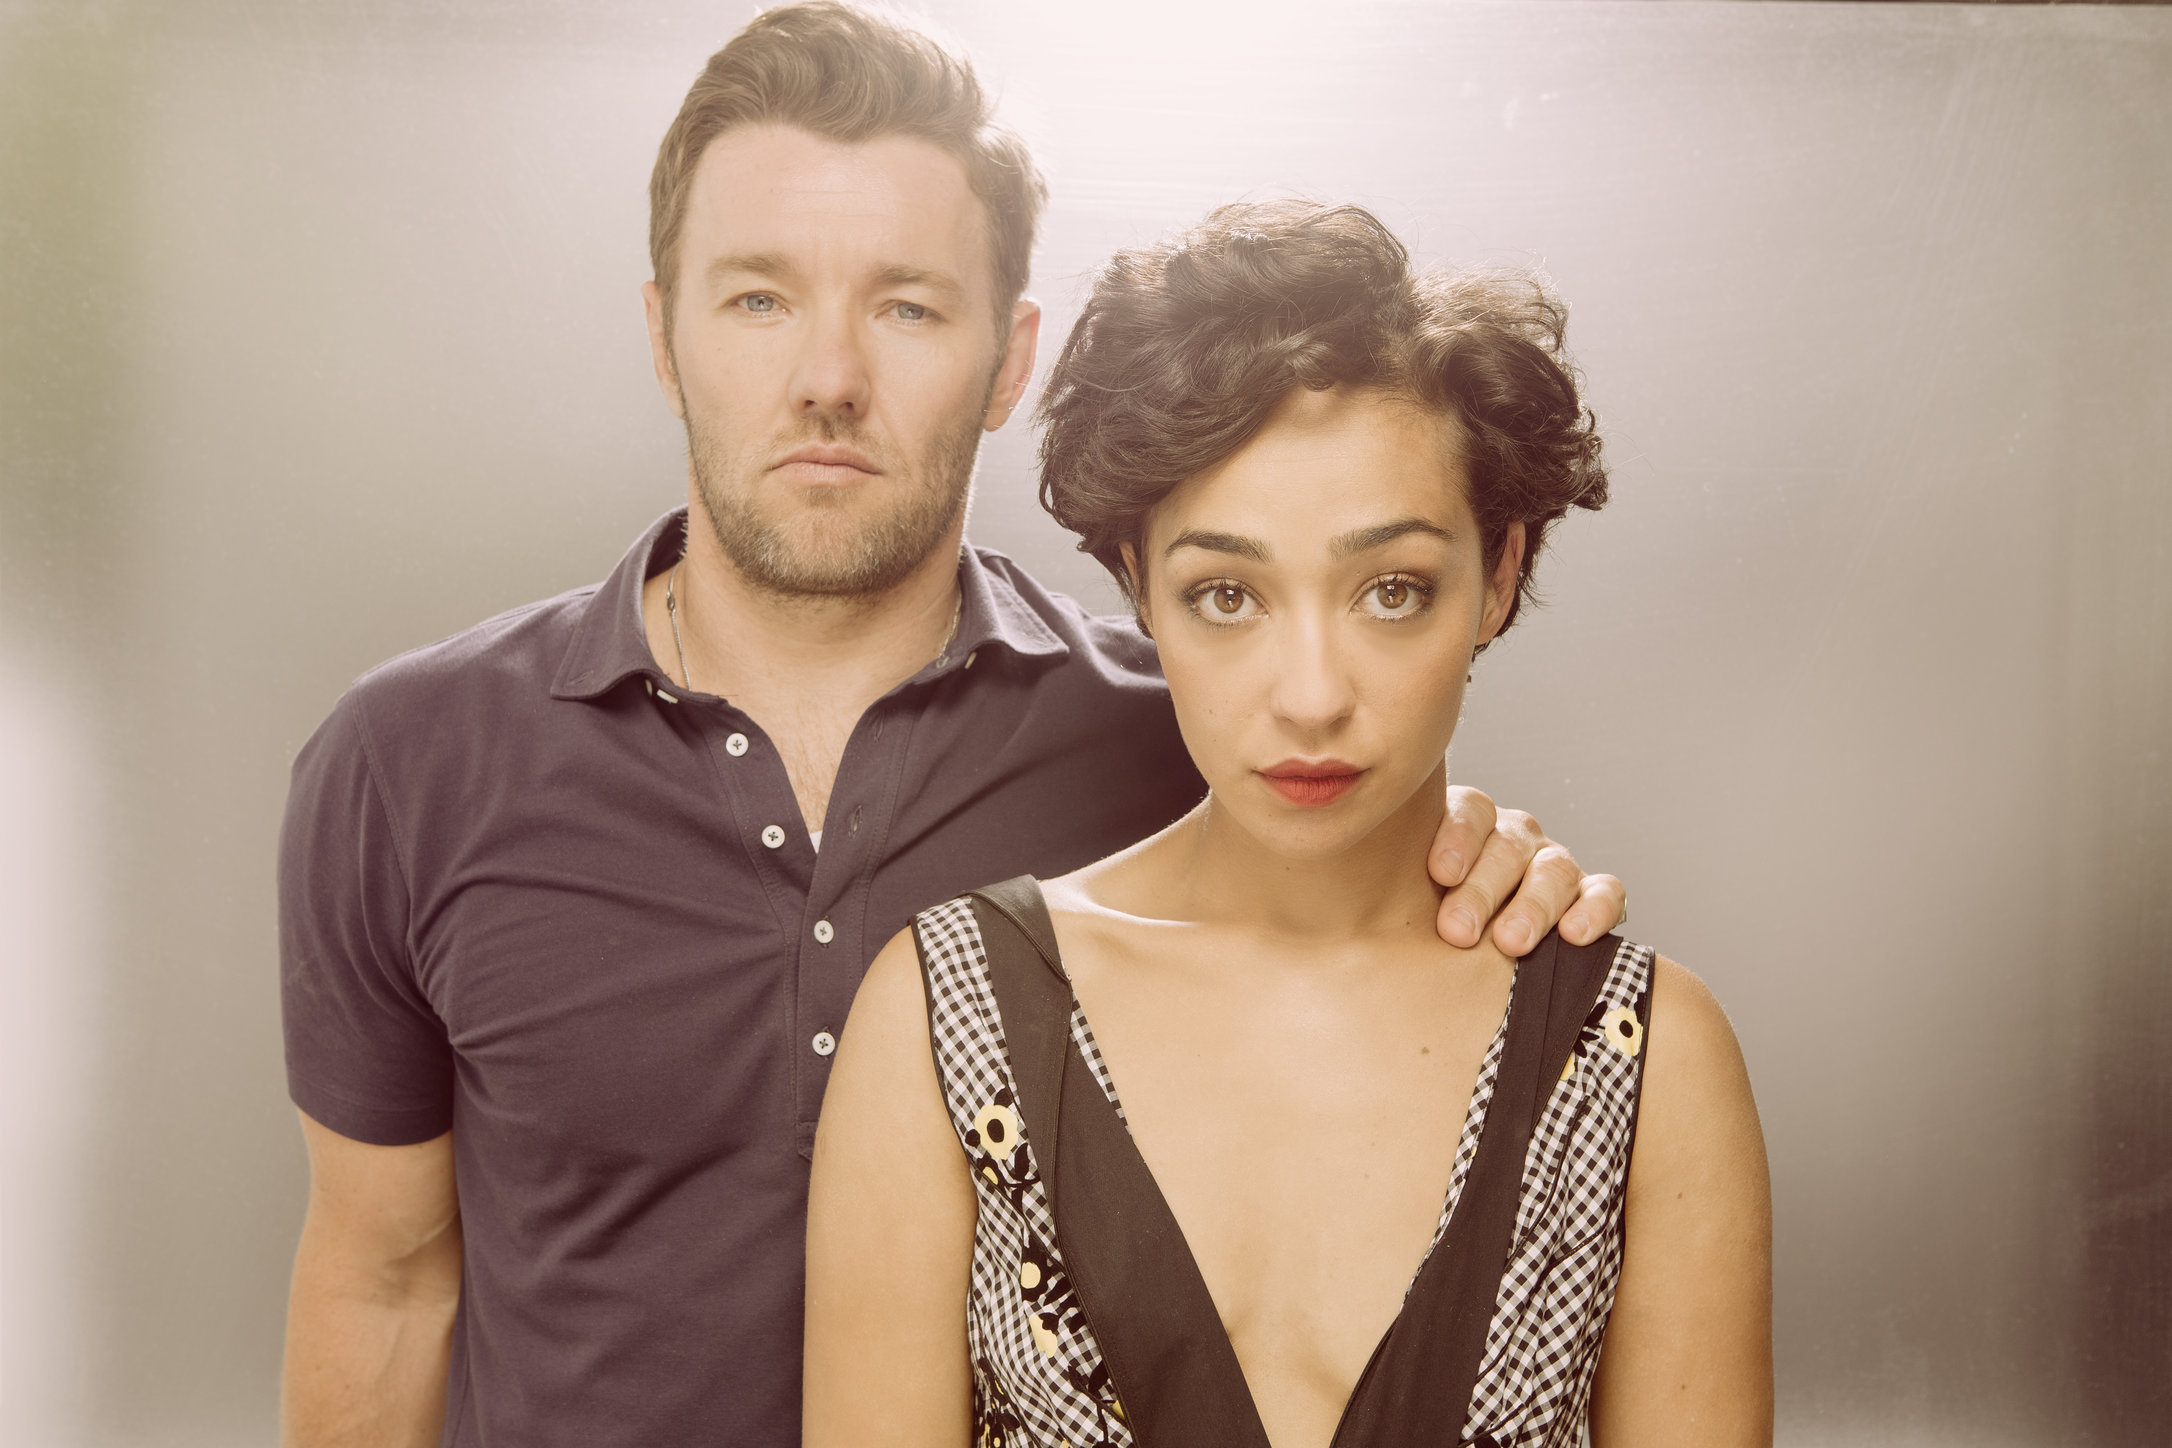 joel edgerton, ruth negga, actors